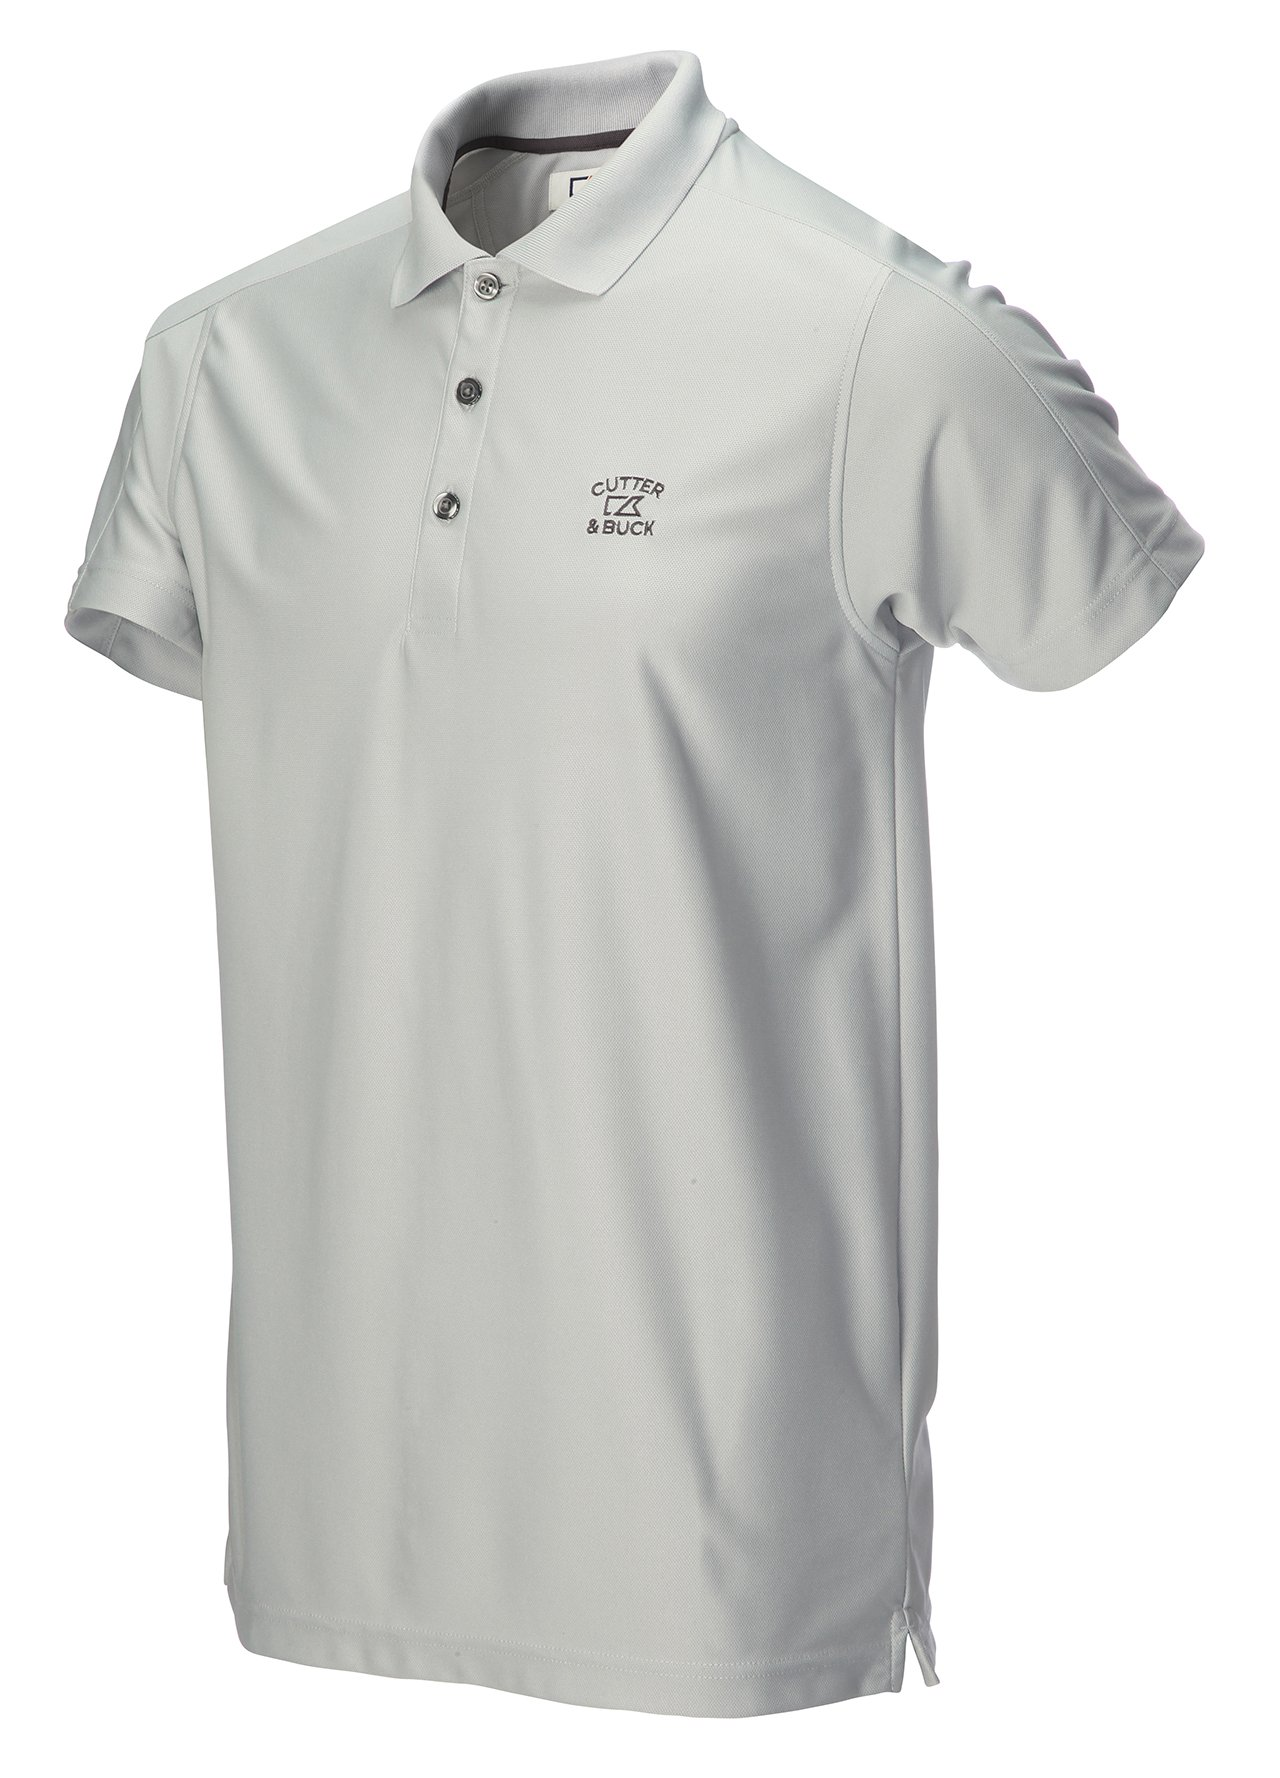 Cutter amp buck drytec genre polo shirt silver xxl ebay for Cutter buck polo shirt size chart